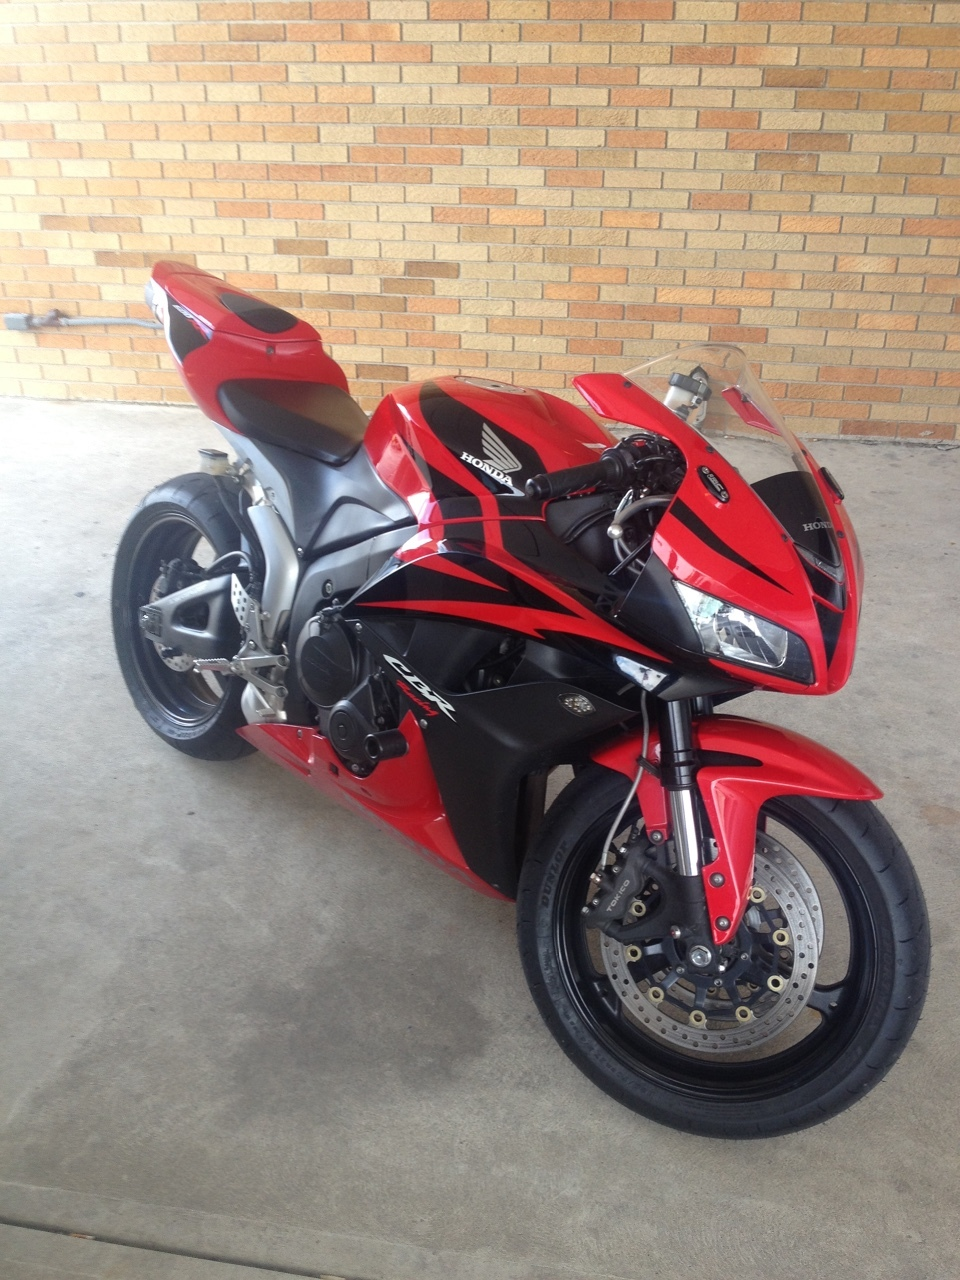 Cbr600rr 600rr For Sale Honda Motorcycles Cycle Trader